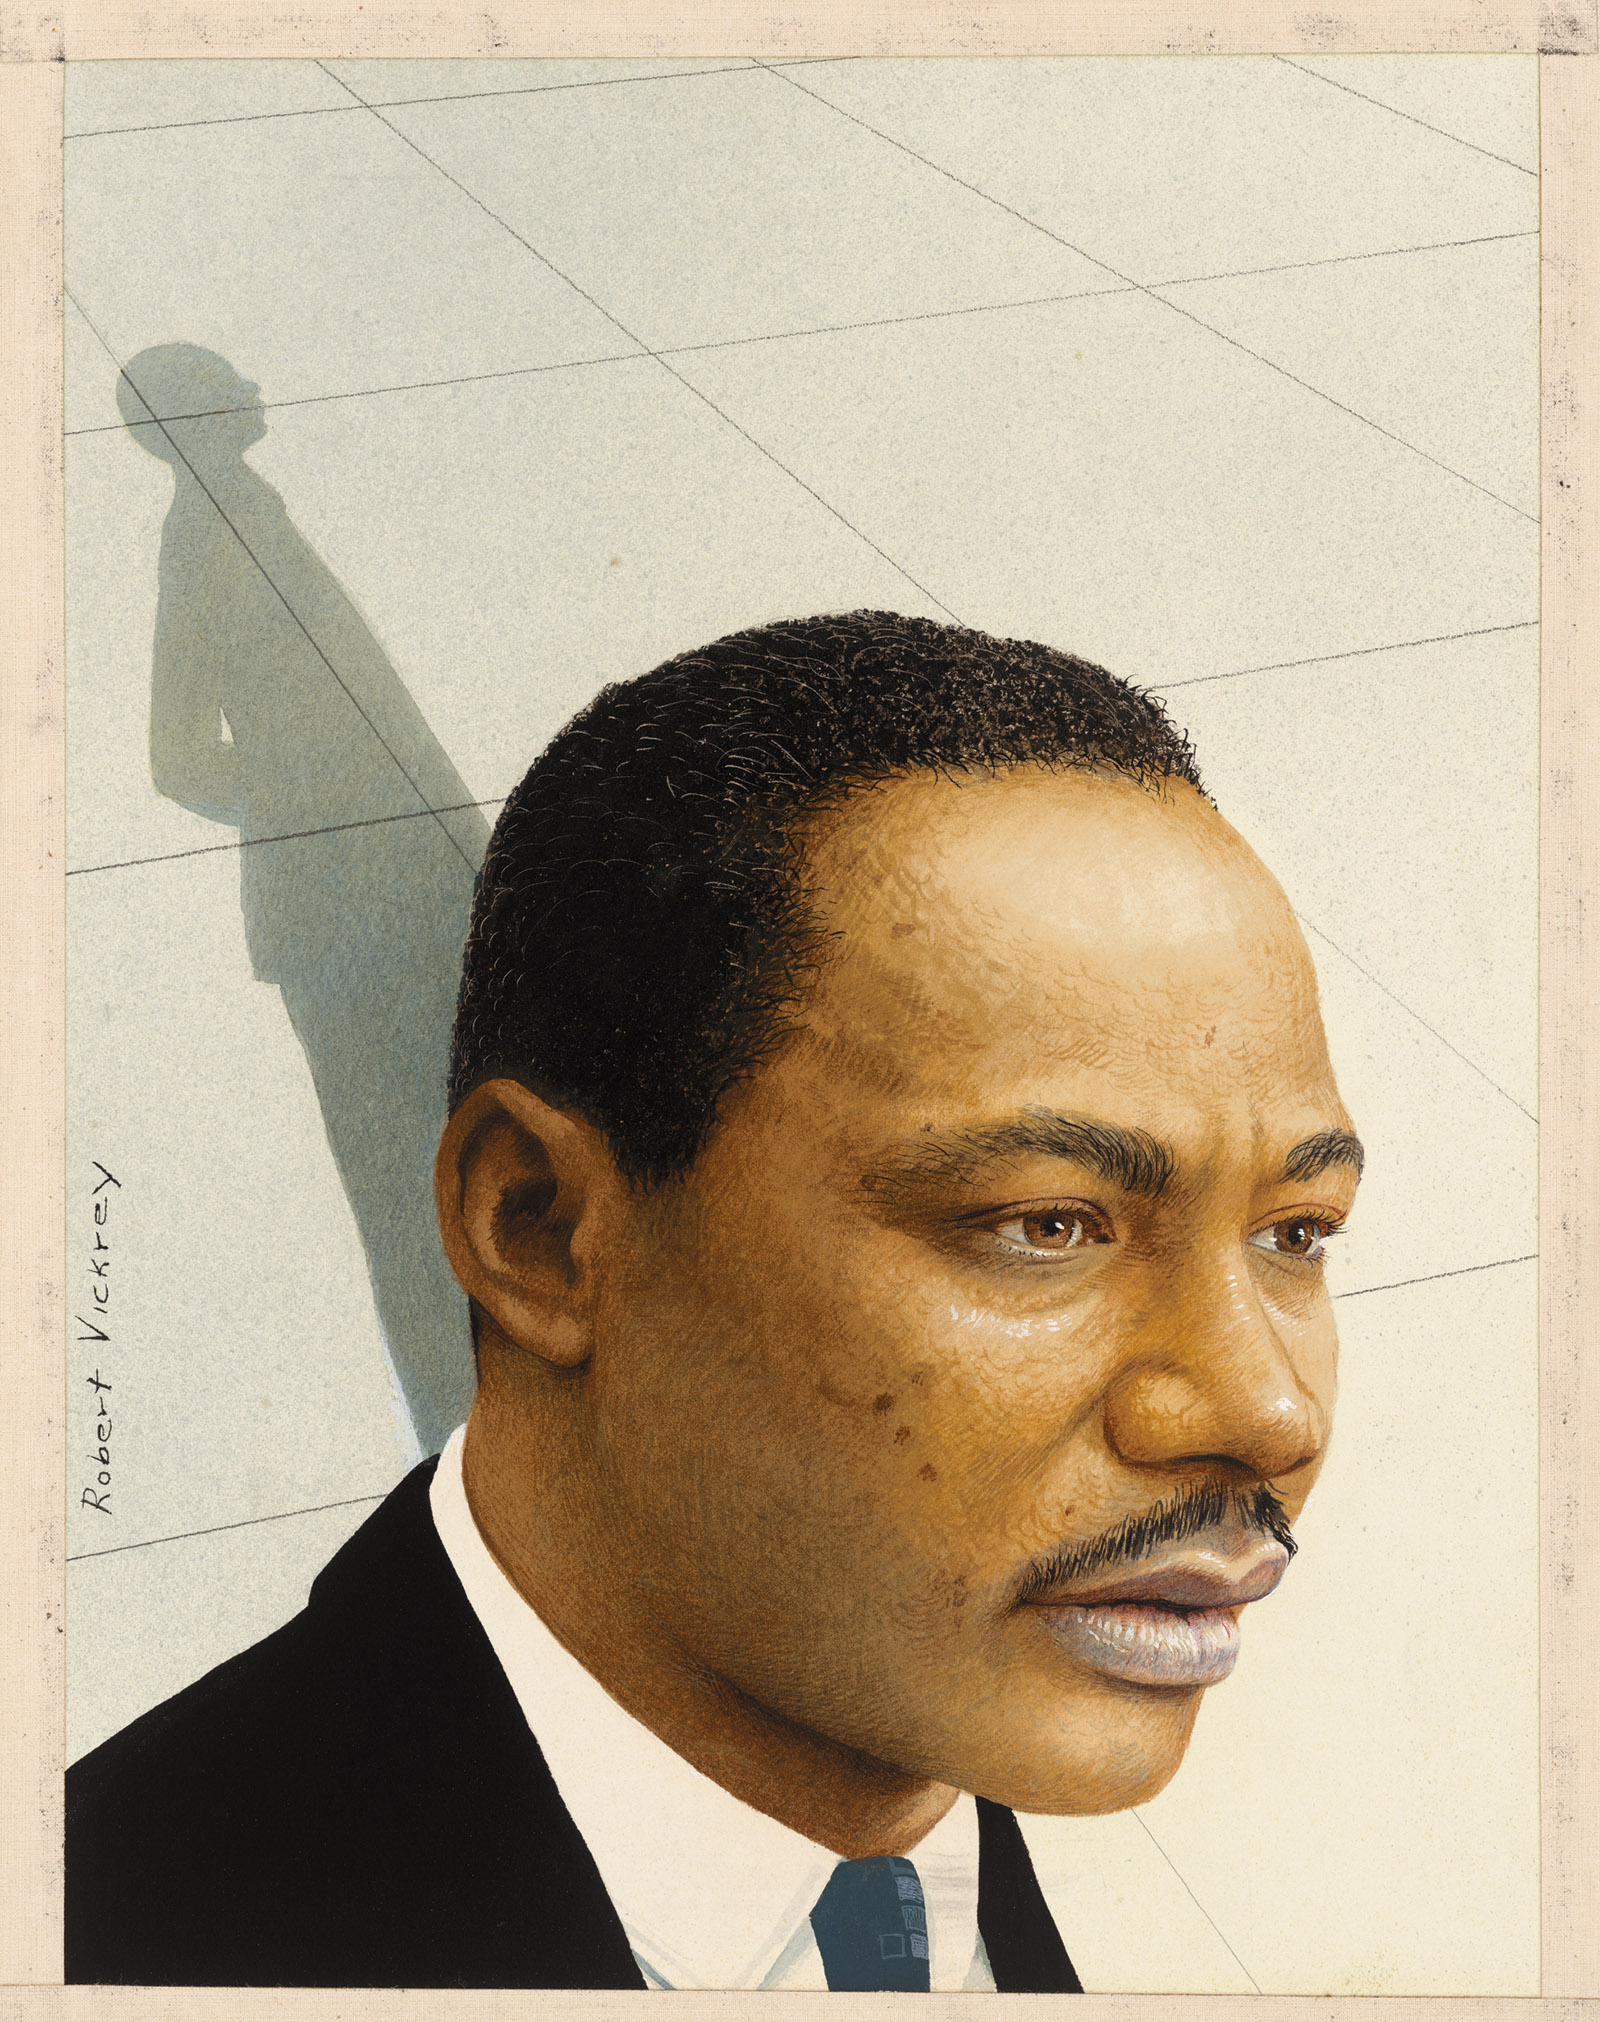 Martin Luther King Jr.; portrait by Robert Vickrey